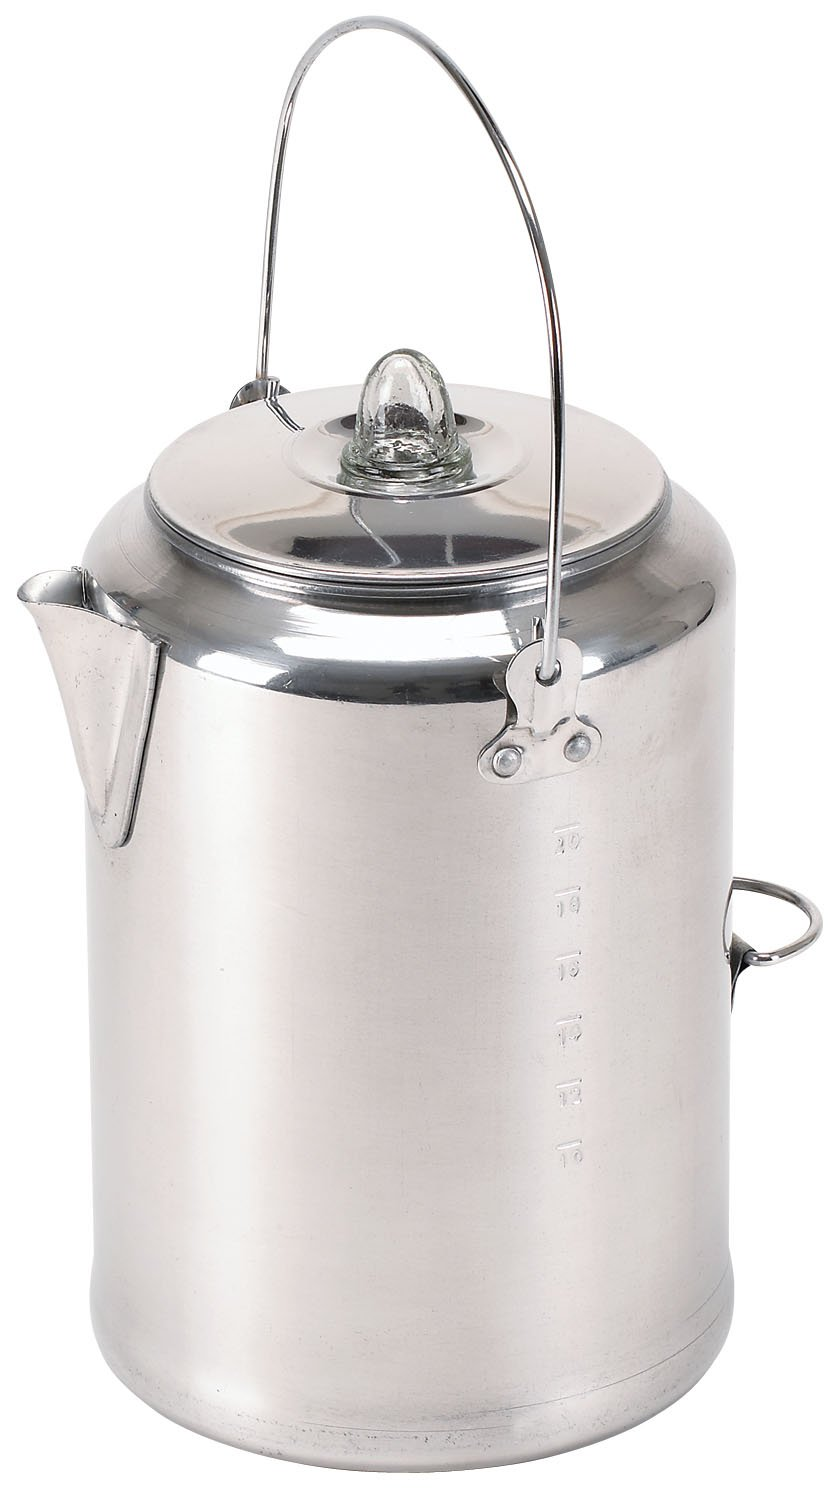 Stansport Aluminum 20 Cup Percolator Coffee Pot by Stansport